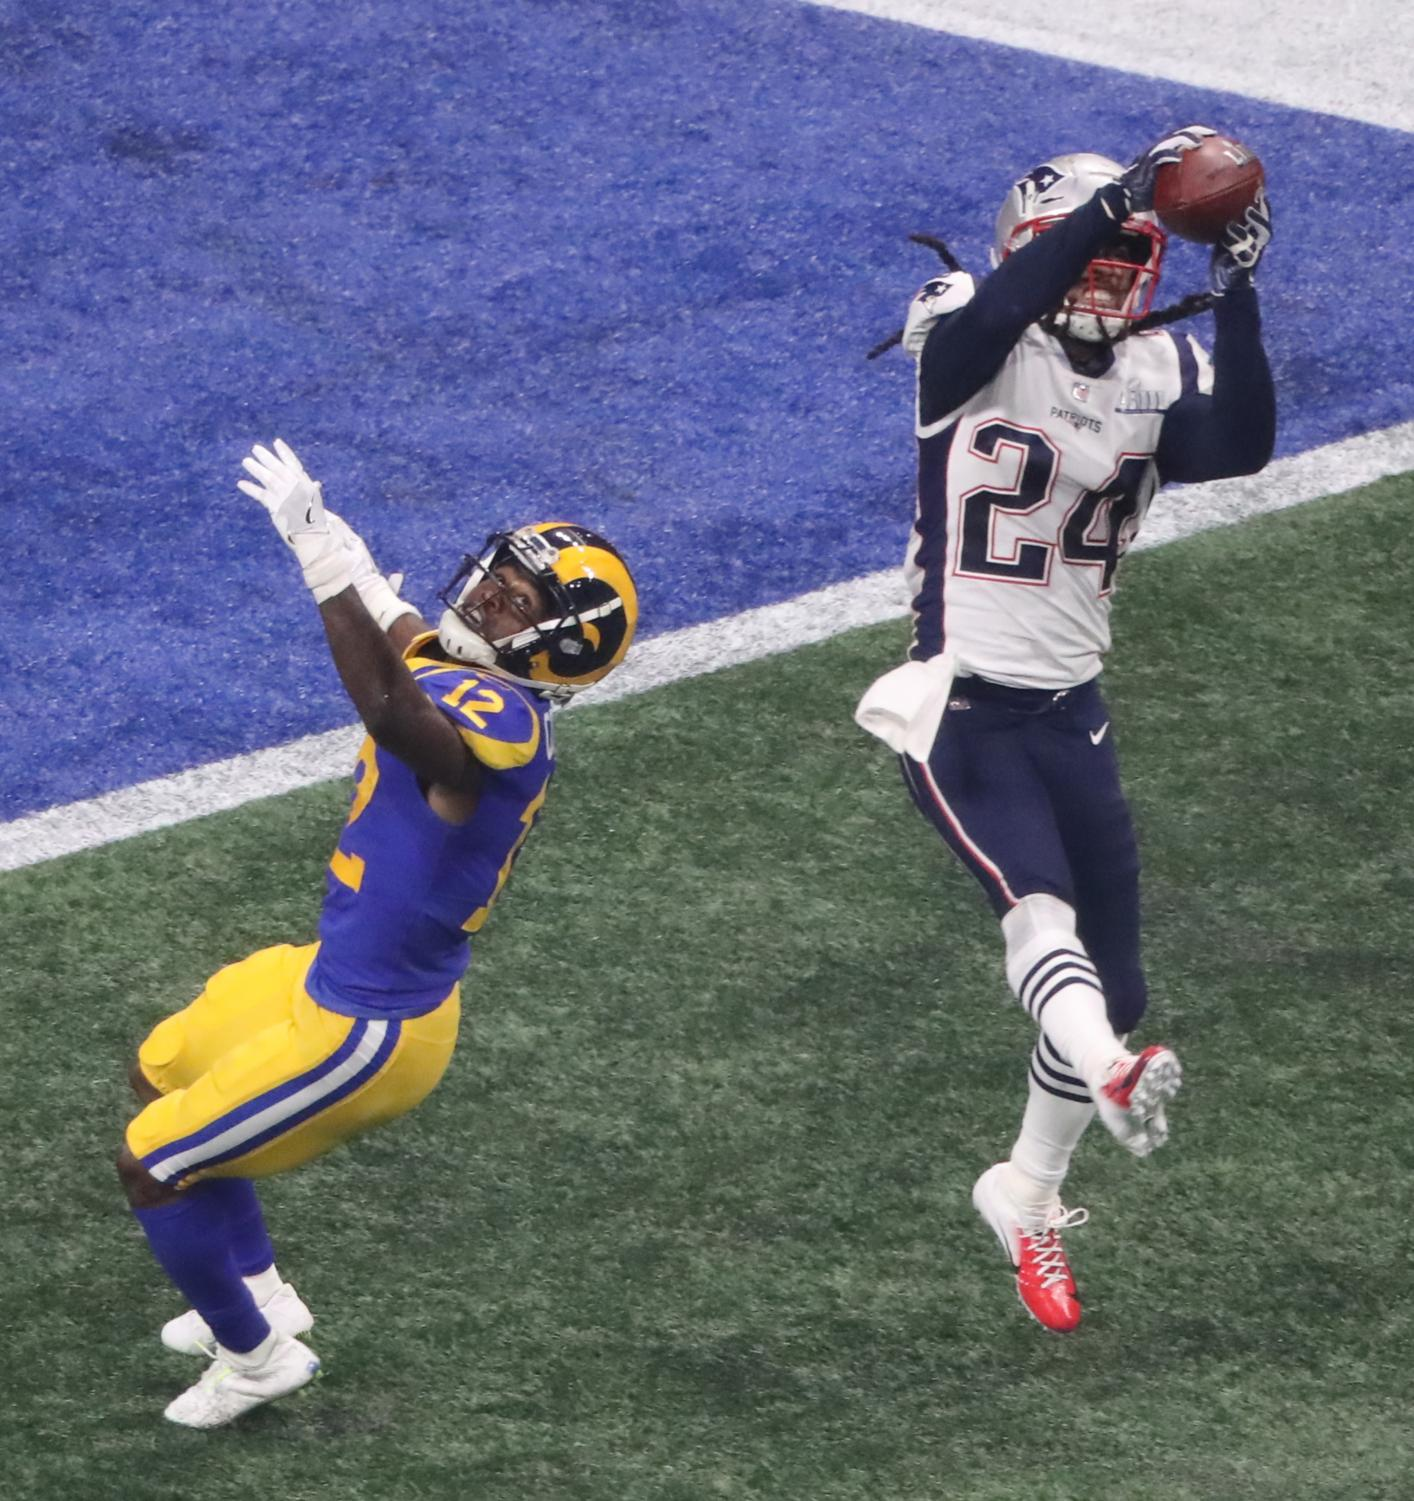 New England Patriots cornerback Stephon Gilmore (24) gets an interception in the fourth quarter against the Los Angeles Rams during Super Bowl LIII at Mercedes-Benz Stadium in Atlanta on Sunday, Feb. 3, 2019. The Patriots won, 13-3. (John Spink/Atlanta Journal-Constitution/TNS)